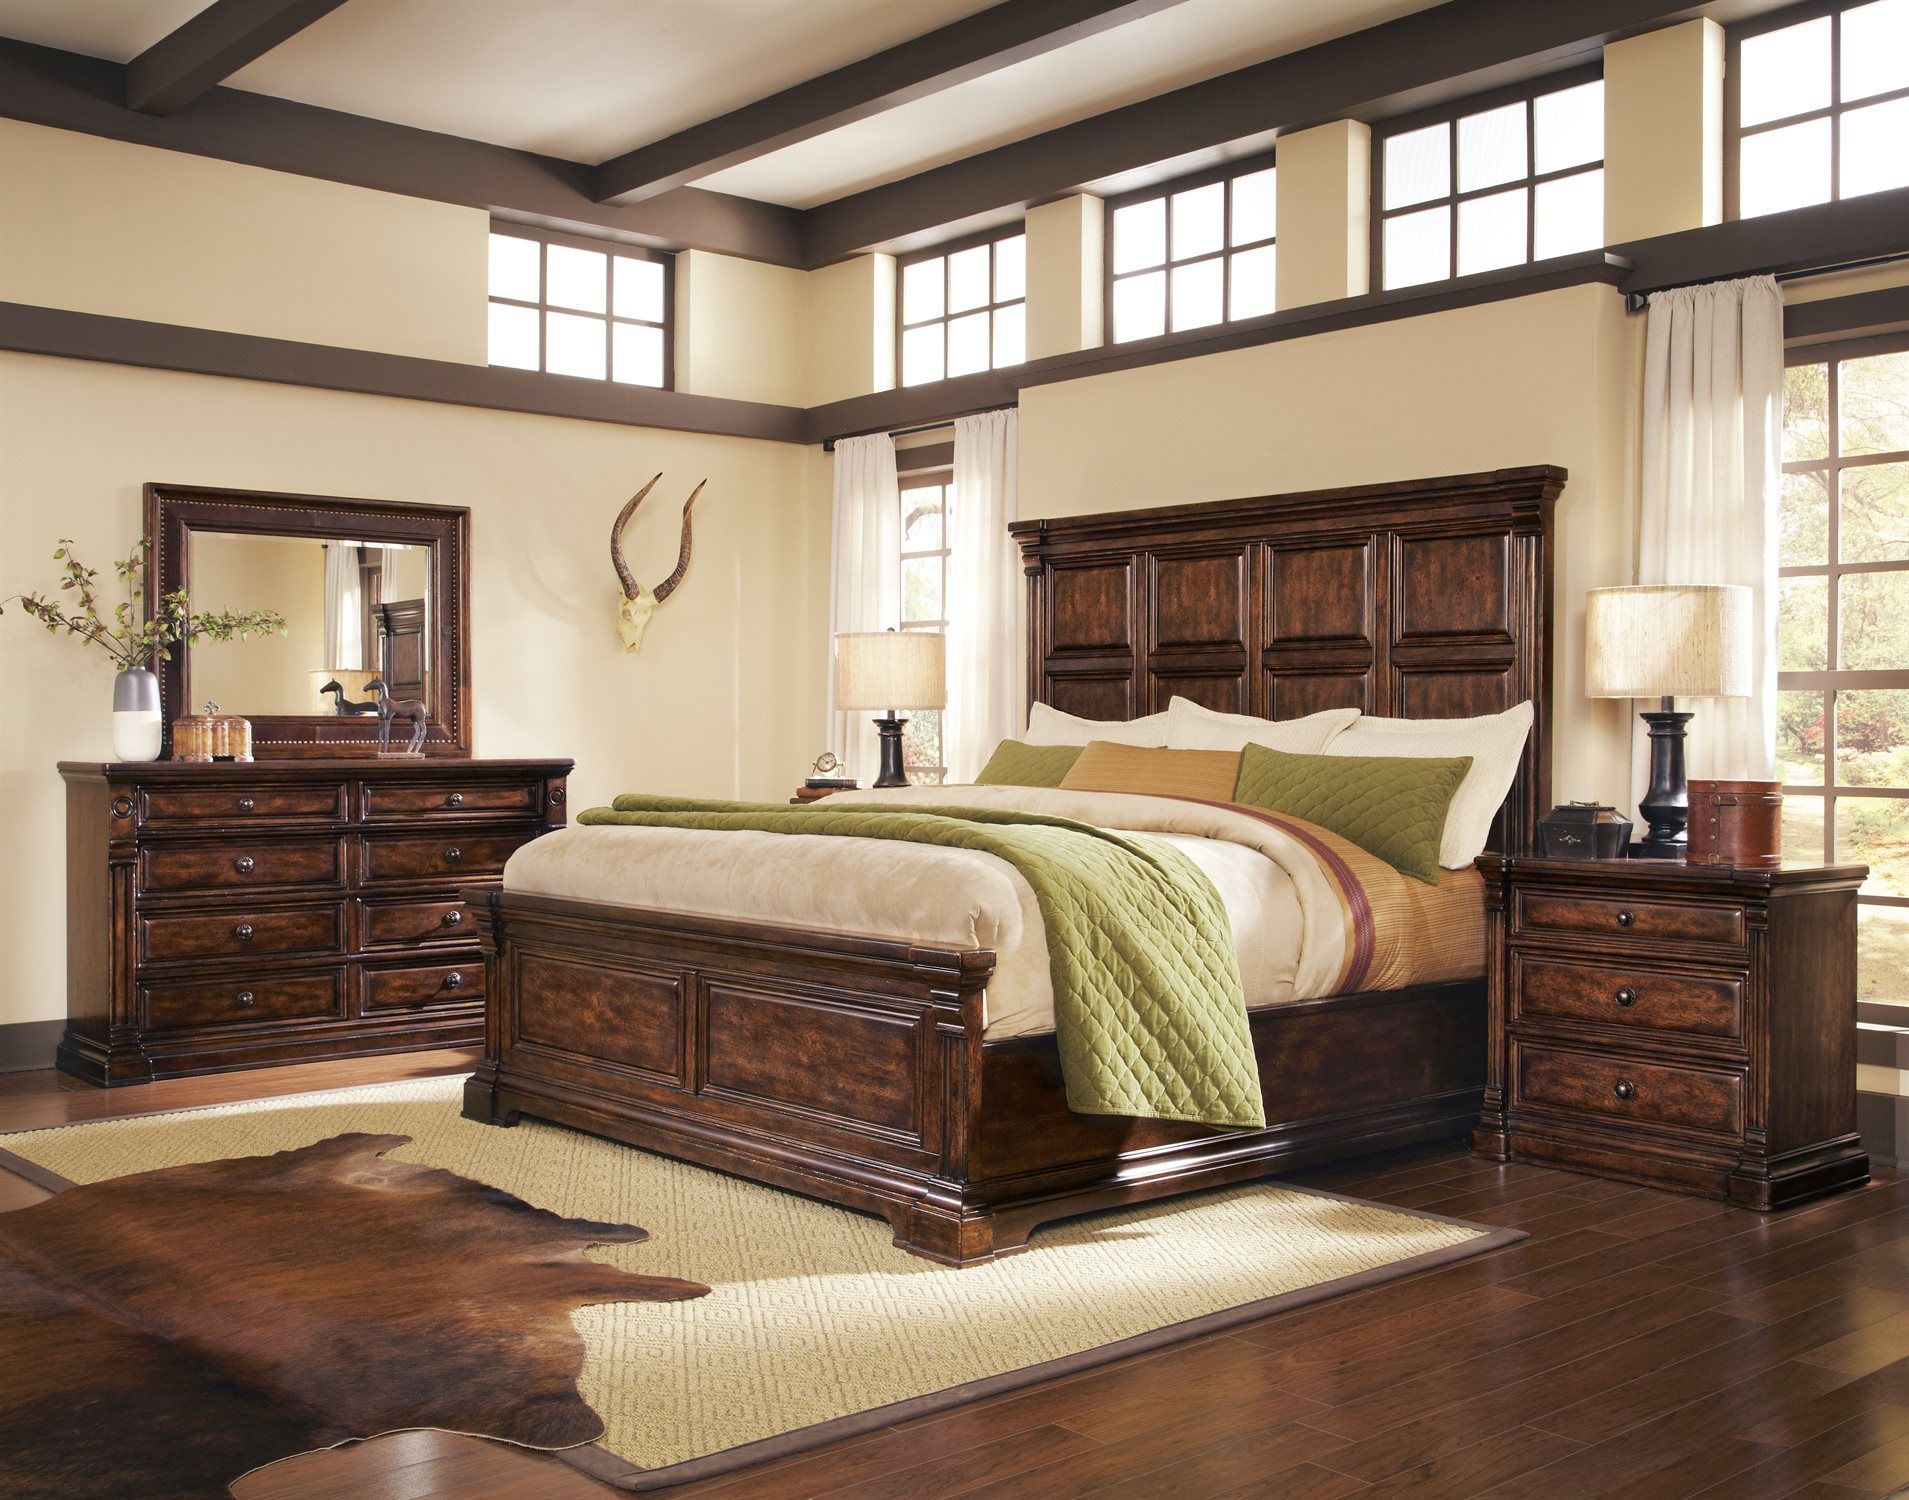 Art furniture whiskey oak bedroom set set master